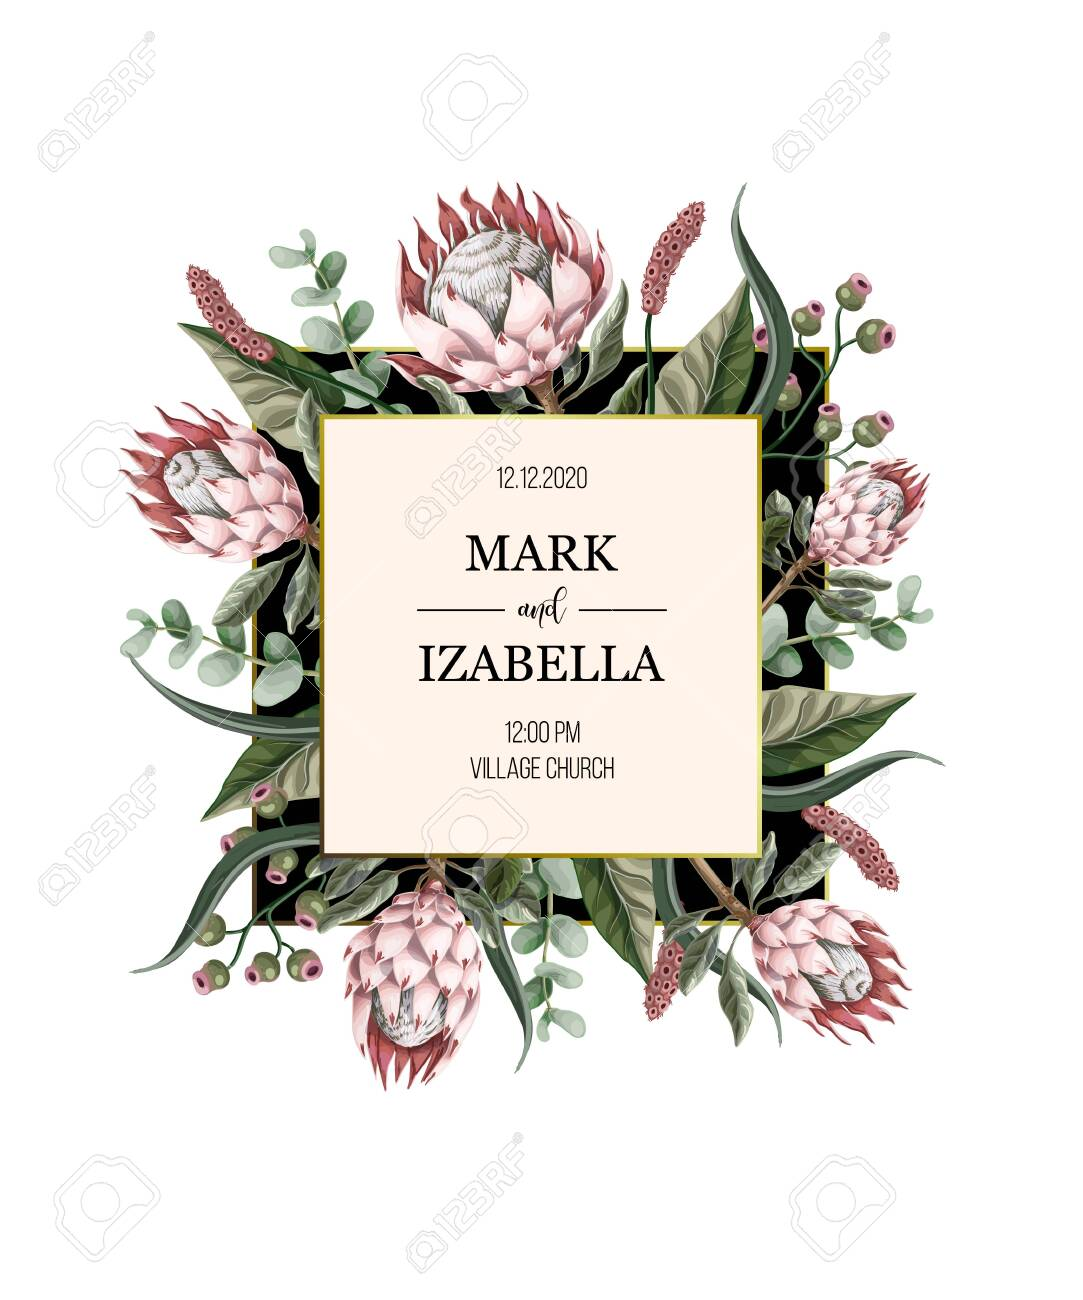 Wedding invitation with leaves, protea flowers, succulent and golden elements in watercolor style. - 129392826